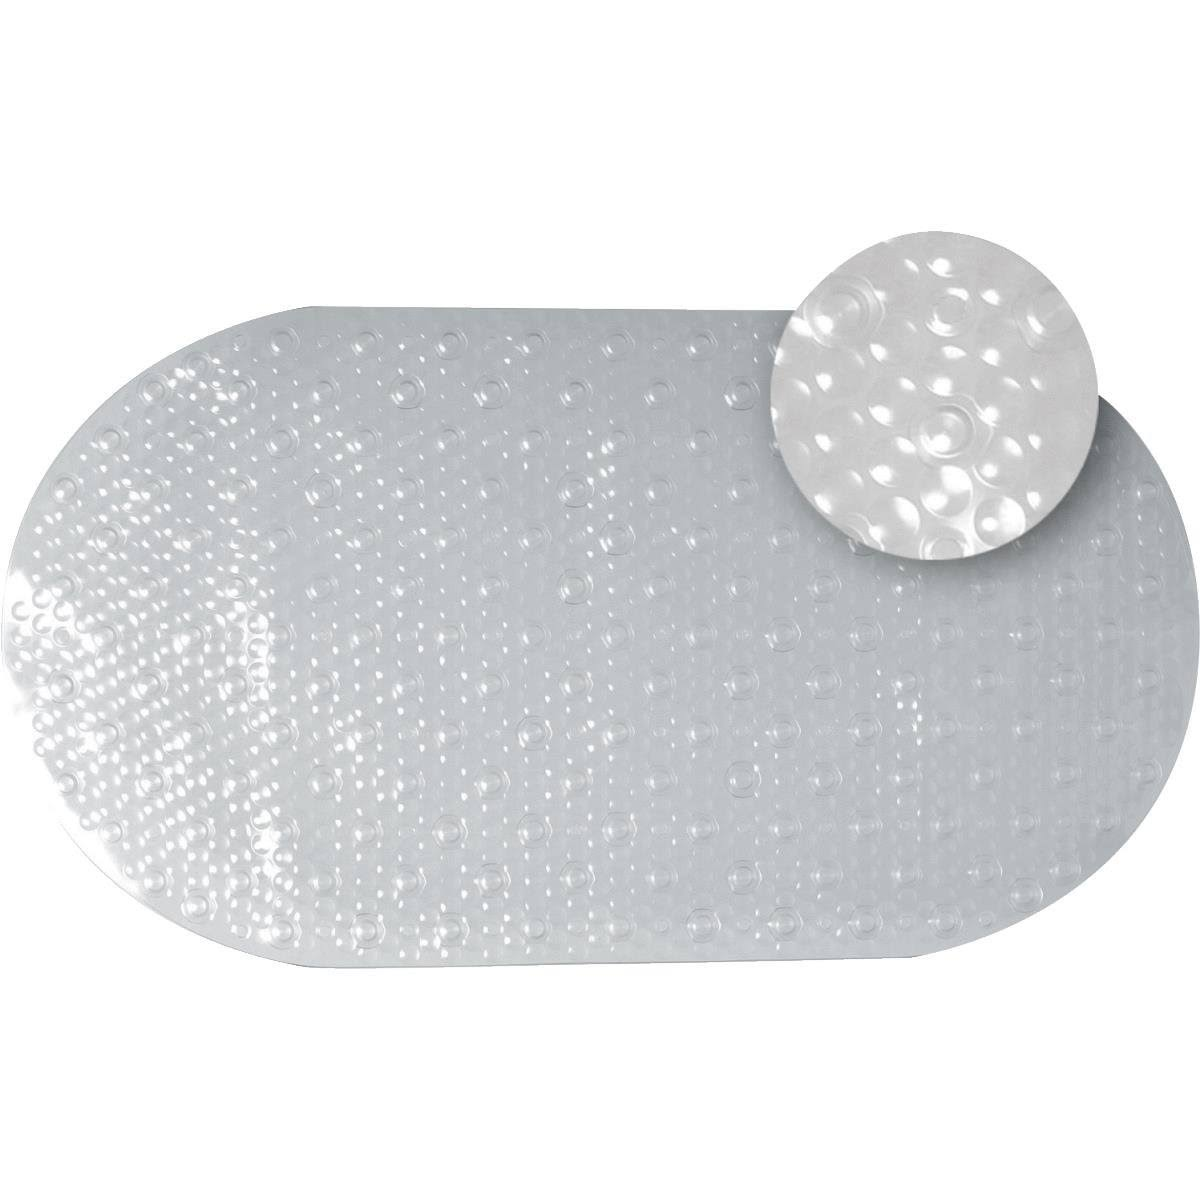 "Zenna Home Bubble Suction Mount Vinyl Bath Mat - Clear, 15.75"" x 27.5"""